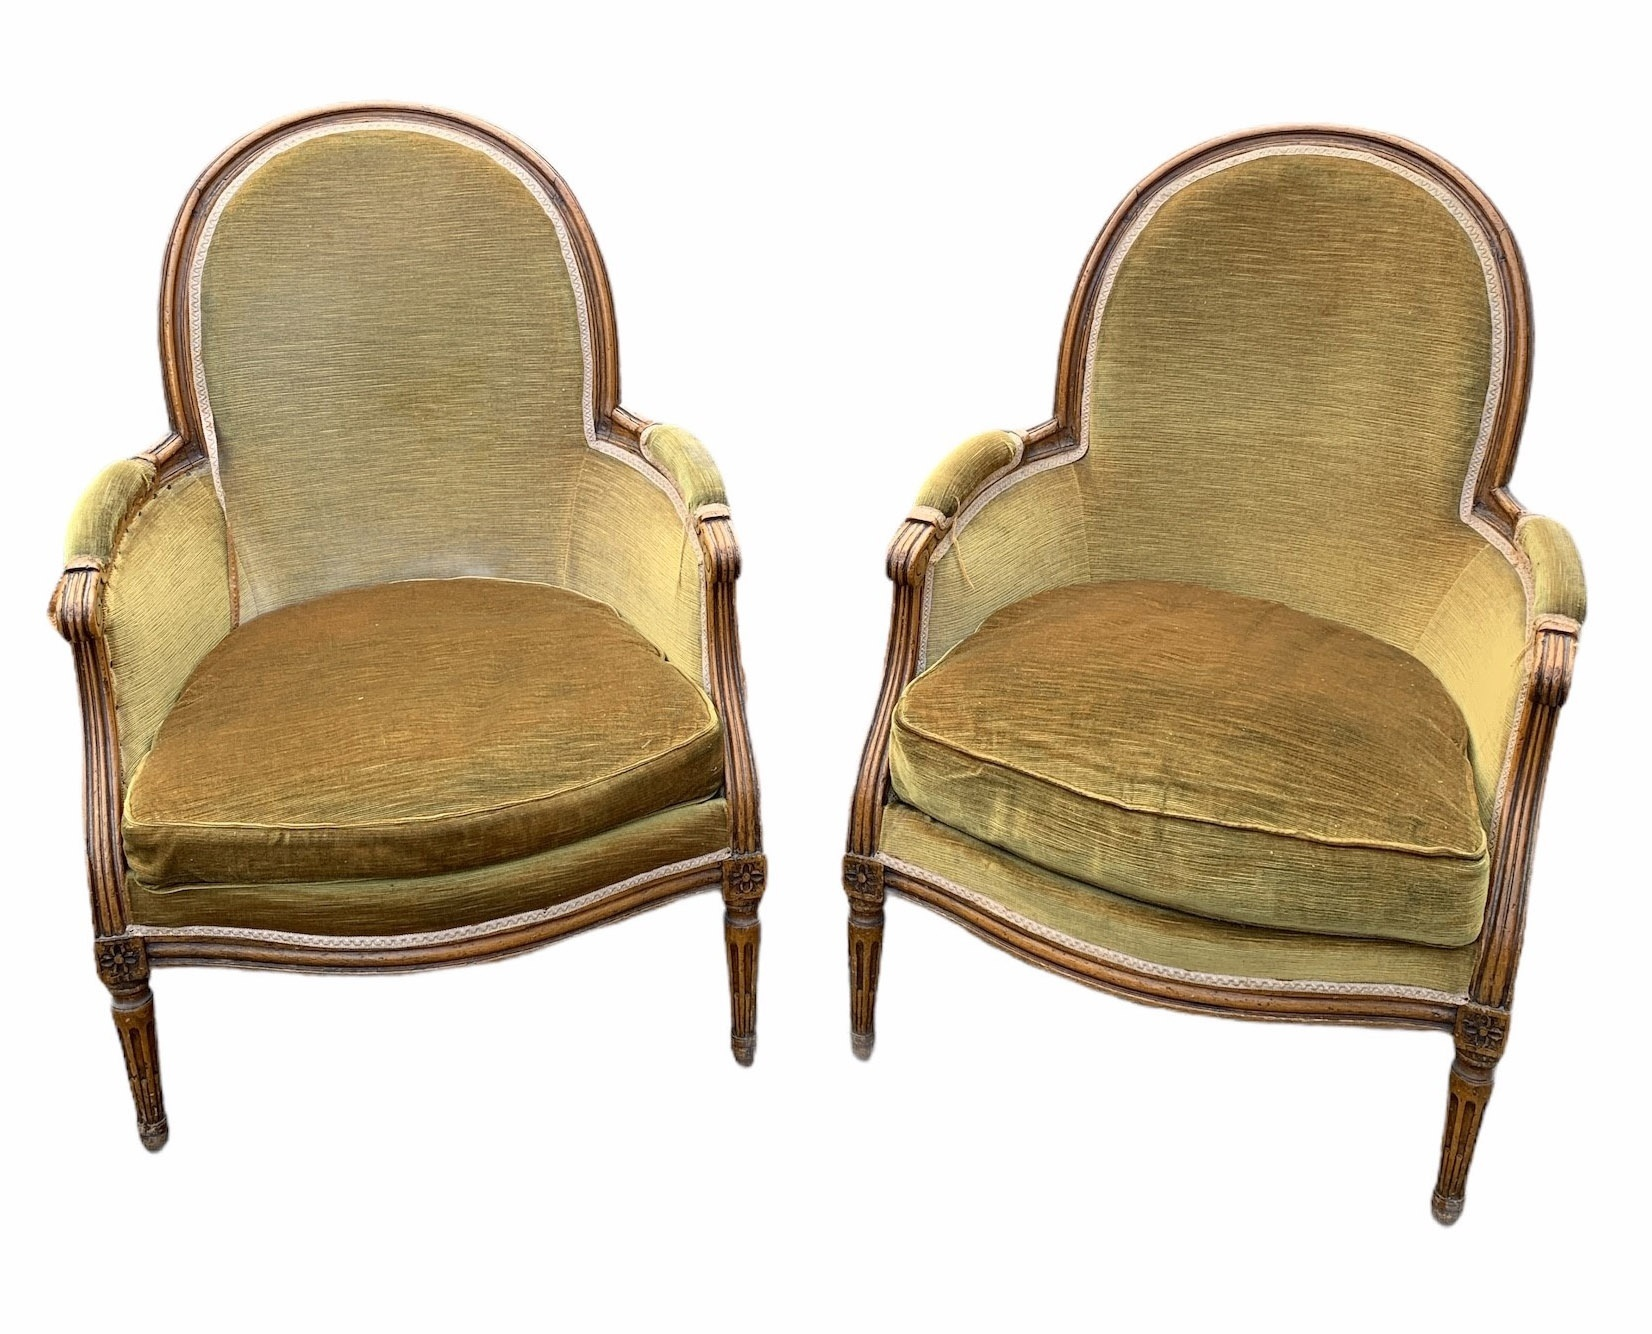 A PAIR OF LOUIS XV DESIGN CARVED WOOD AND UPHOLSTERED BERGERE ARMCHAIRS Raised on fluted legs.